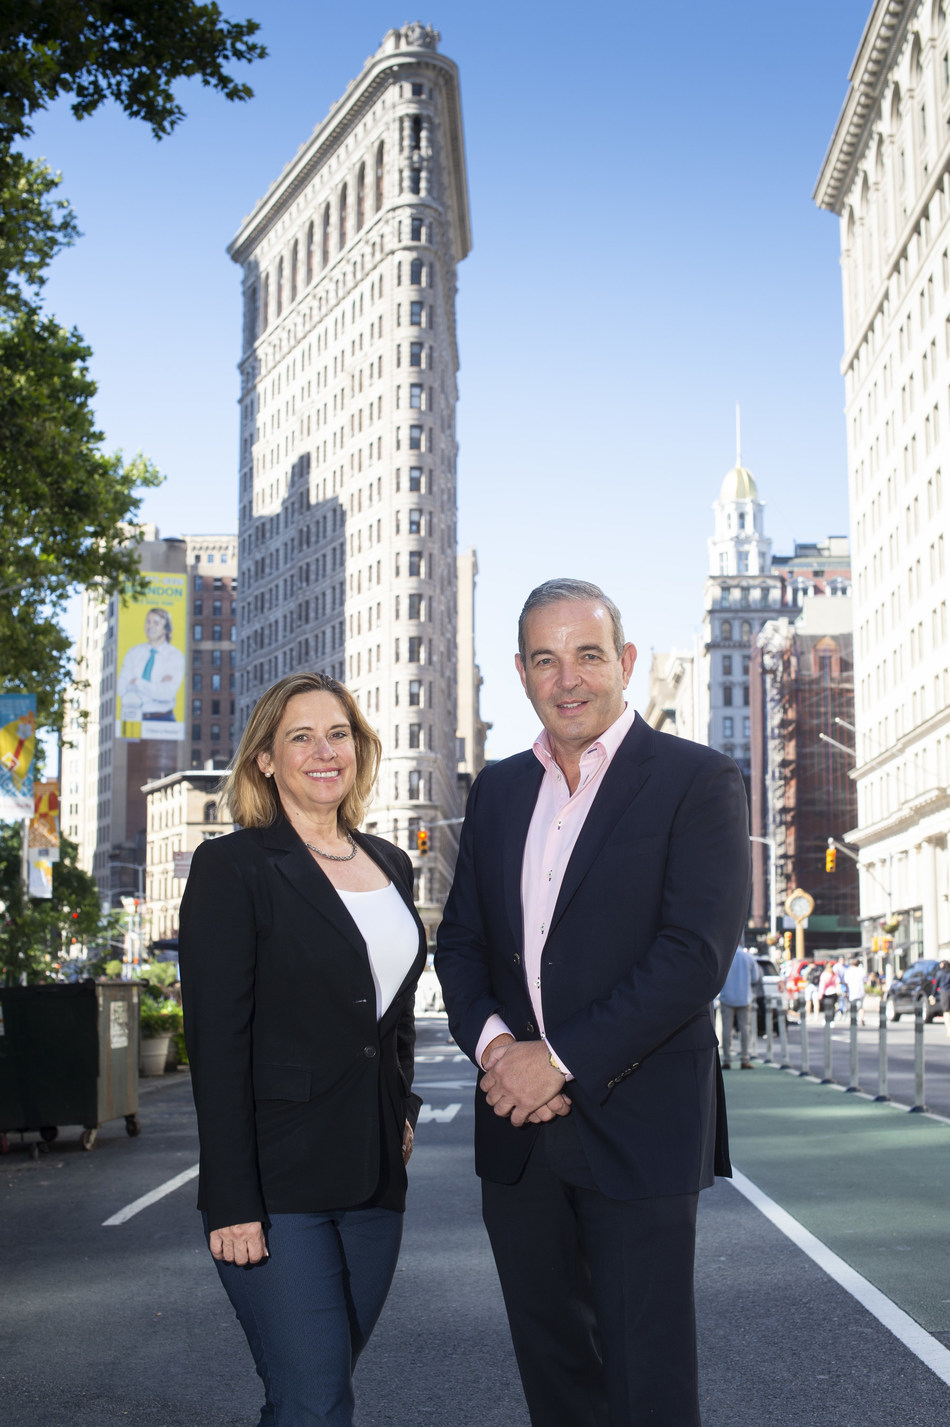 eShopWorld is pleased to announce the appointment of Cynthia Hollen as President, eShopWorld US. Pictured are Cynthia and Tommy Kelly, Founder and CEO of eShopWorld. Her appointment comes as the company ramps up US presence and investment to meet demand (PRNewsfoto/eShopWorld)